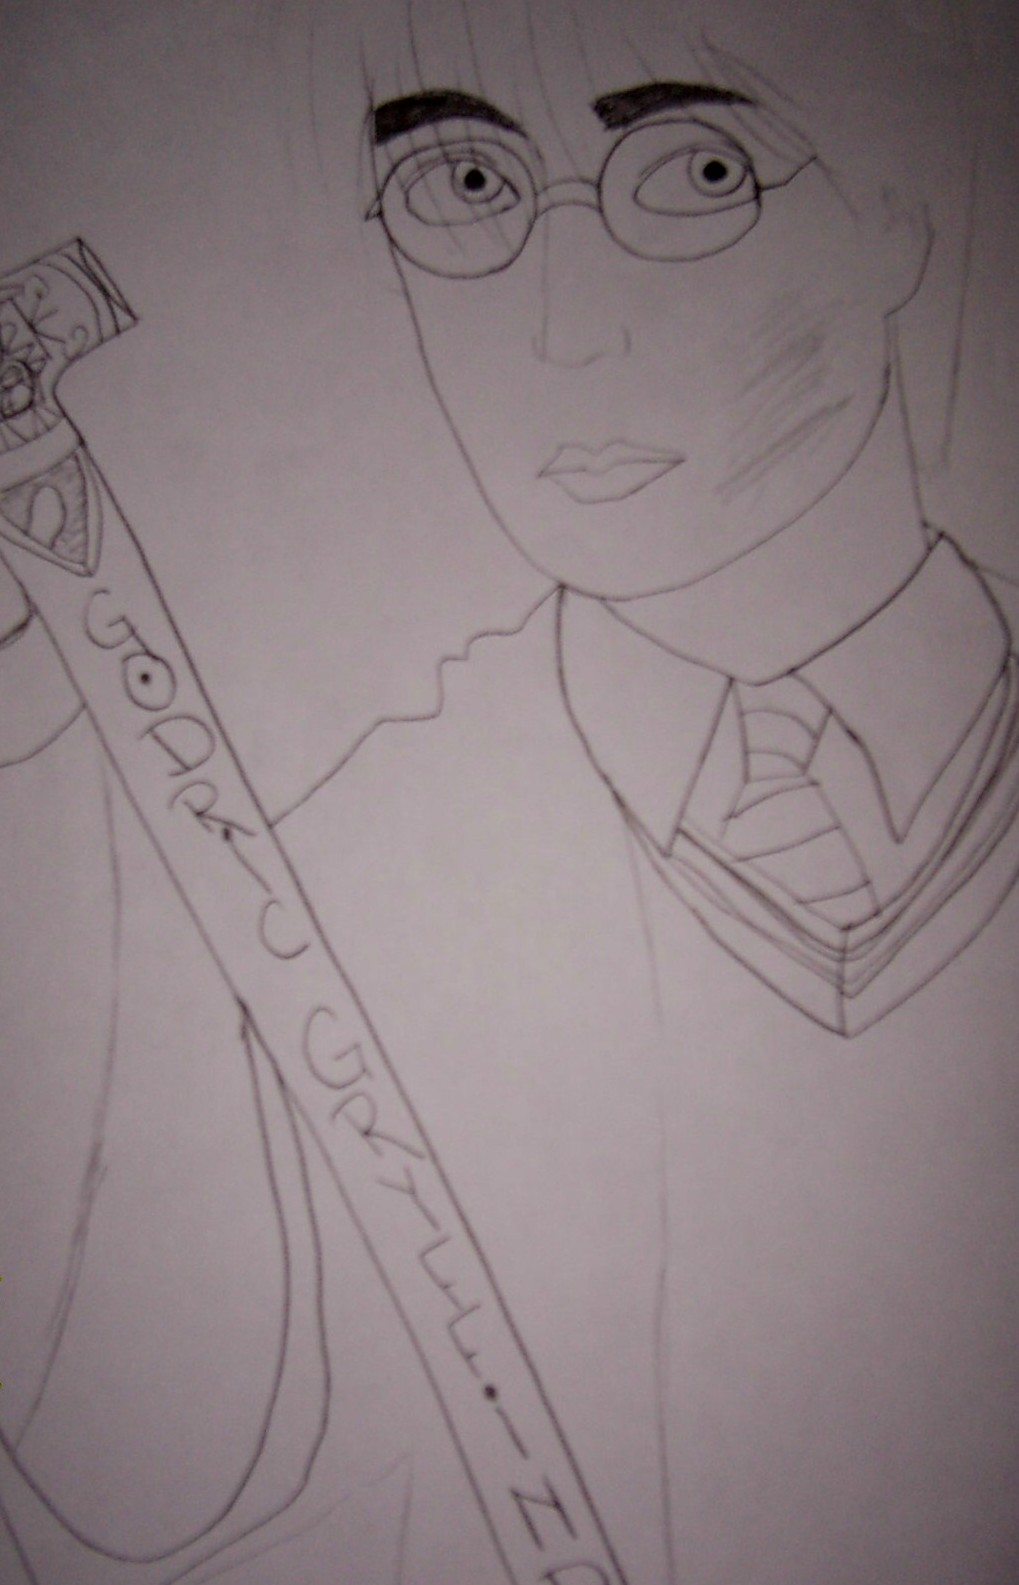 Harry with Godric's sword by pansyparkinson1313